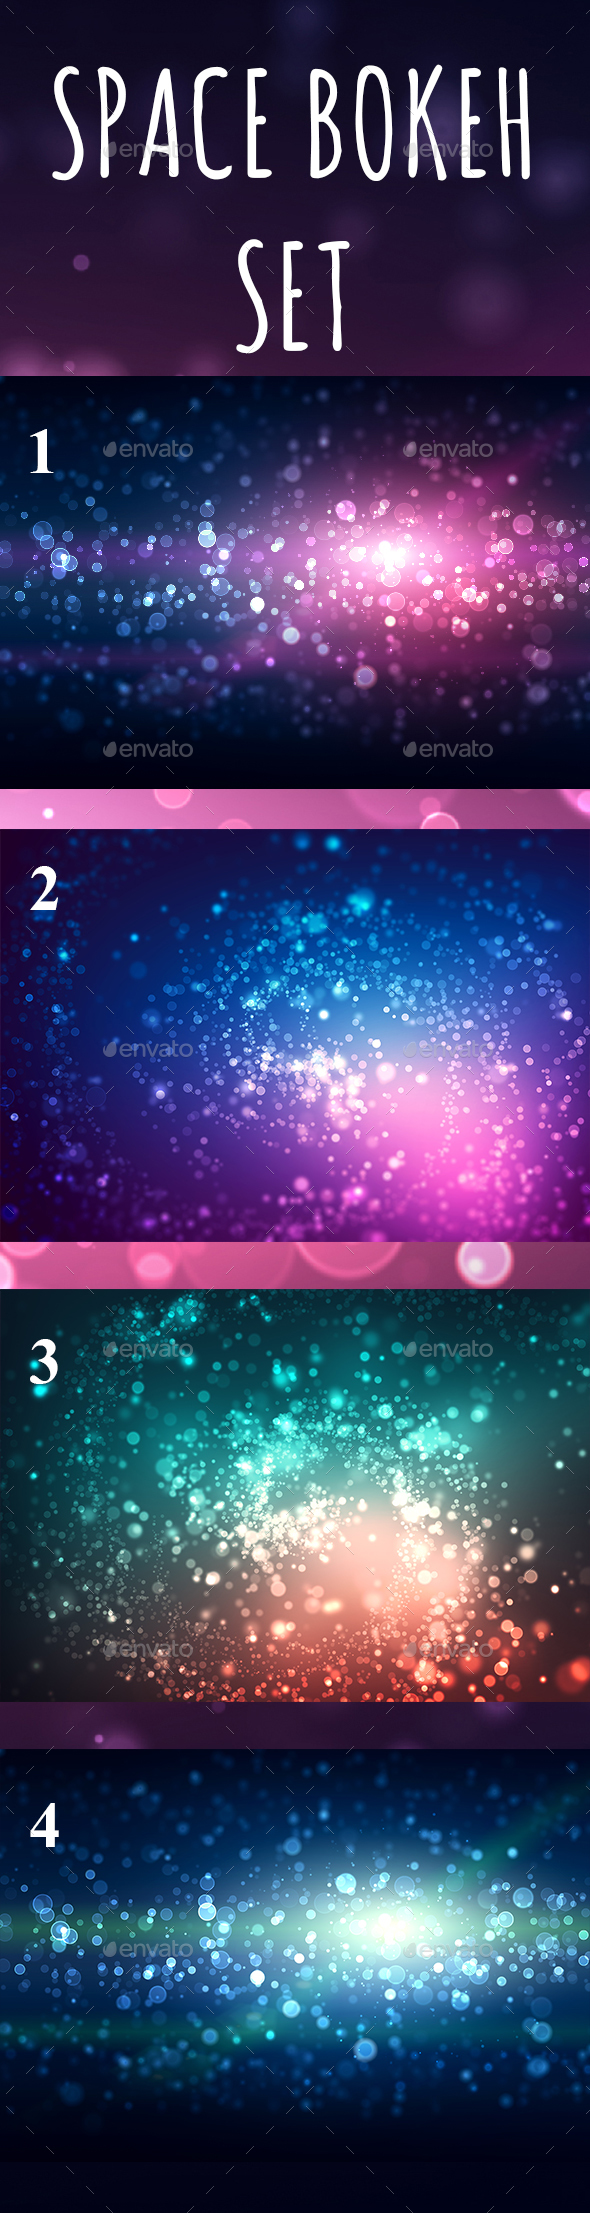 Space Bokeh Light Set - Abstract Backgrounds